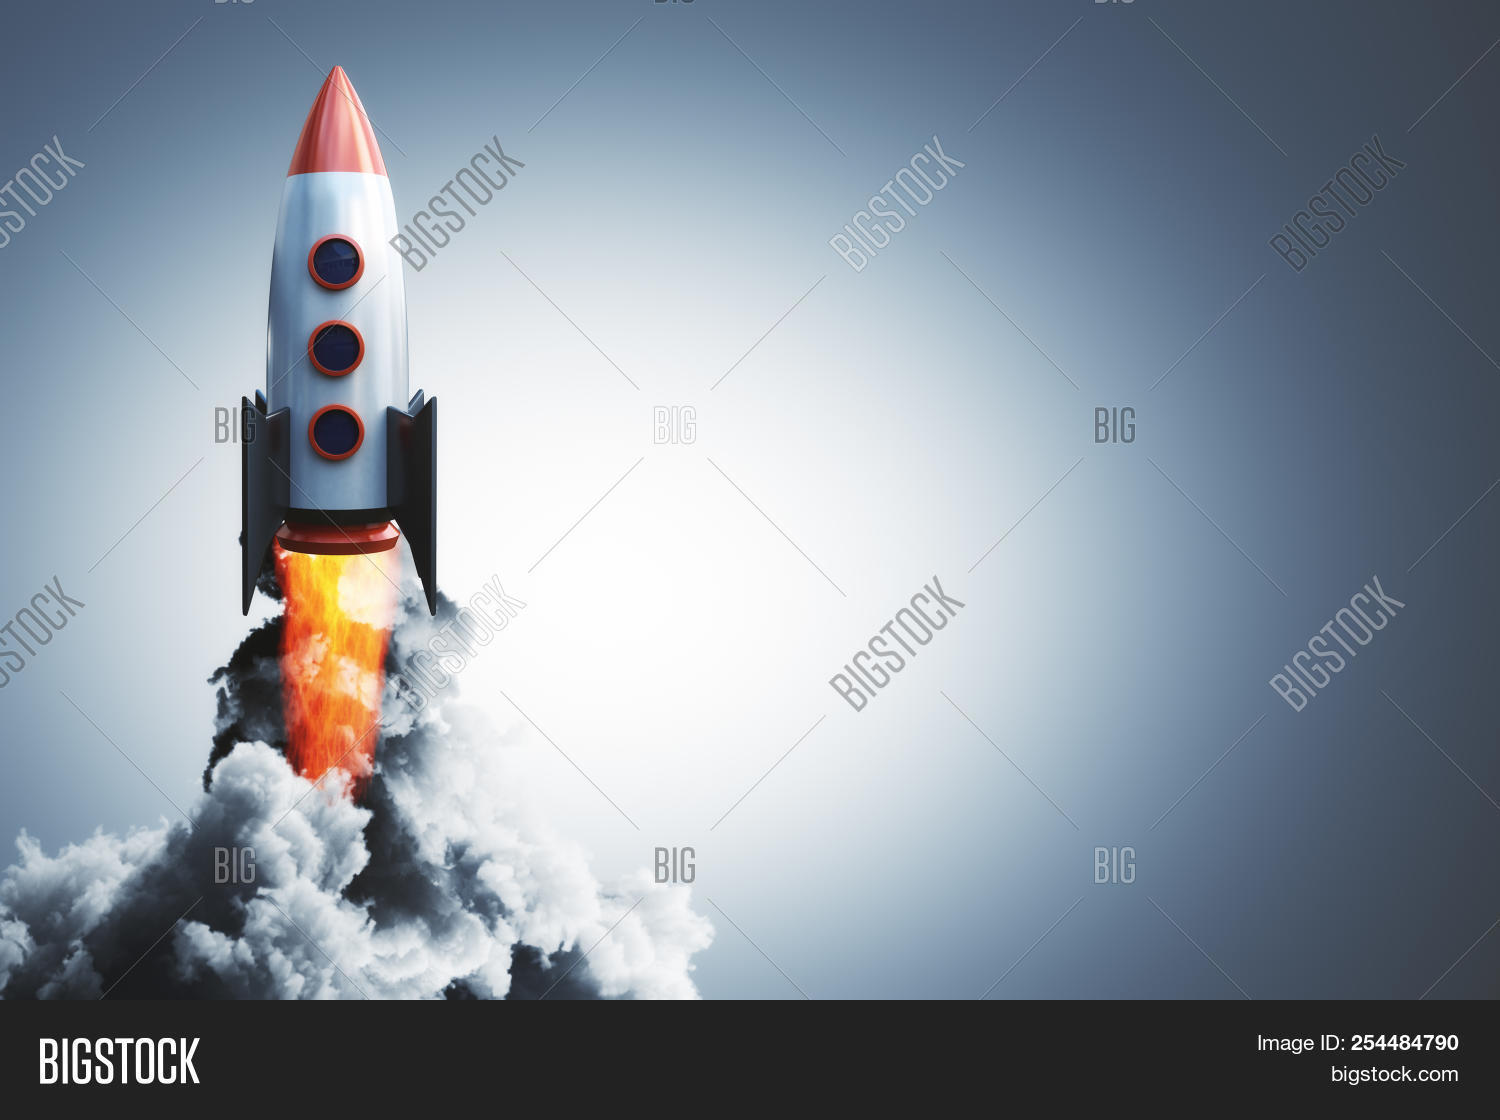 3D,Rendering,abstract,astronaut,background,begin,blank,business,carrier,clean,concept,copy,copyspace,cosmonaut,cosmos,engine,entrepreneurship,fire,flame,fly,future,gray,illustration,international,launch,launching,missile,mission,object,off,planet,render,rocket,science,shuttle,sky,smoke,space,spacecraft,spaceman,spaceship,start,startup,symbol,system,take,technology,travel,up,white